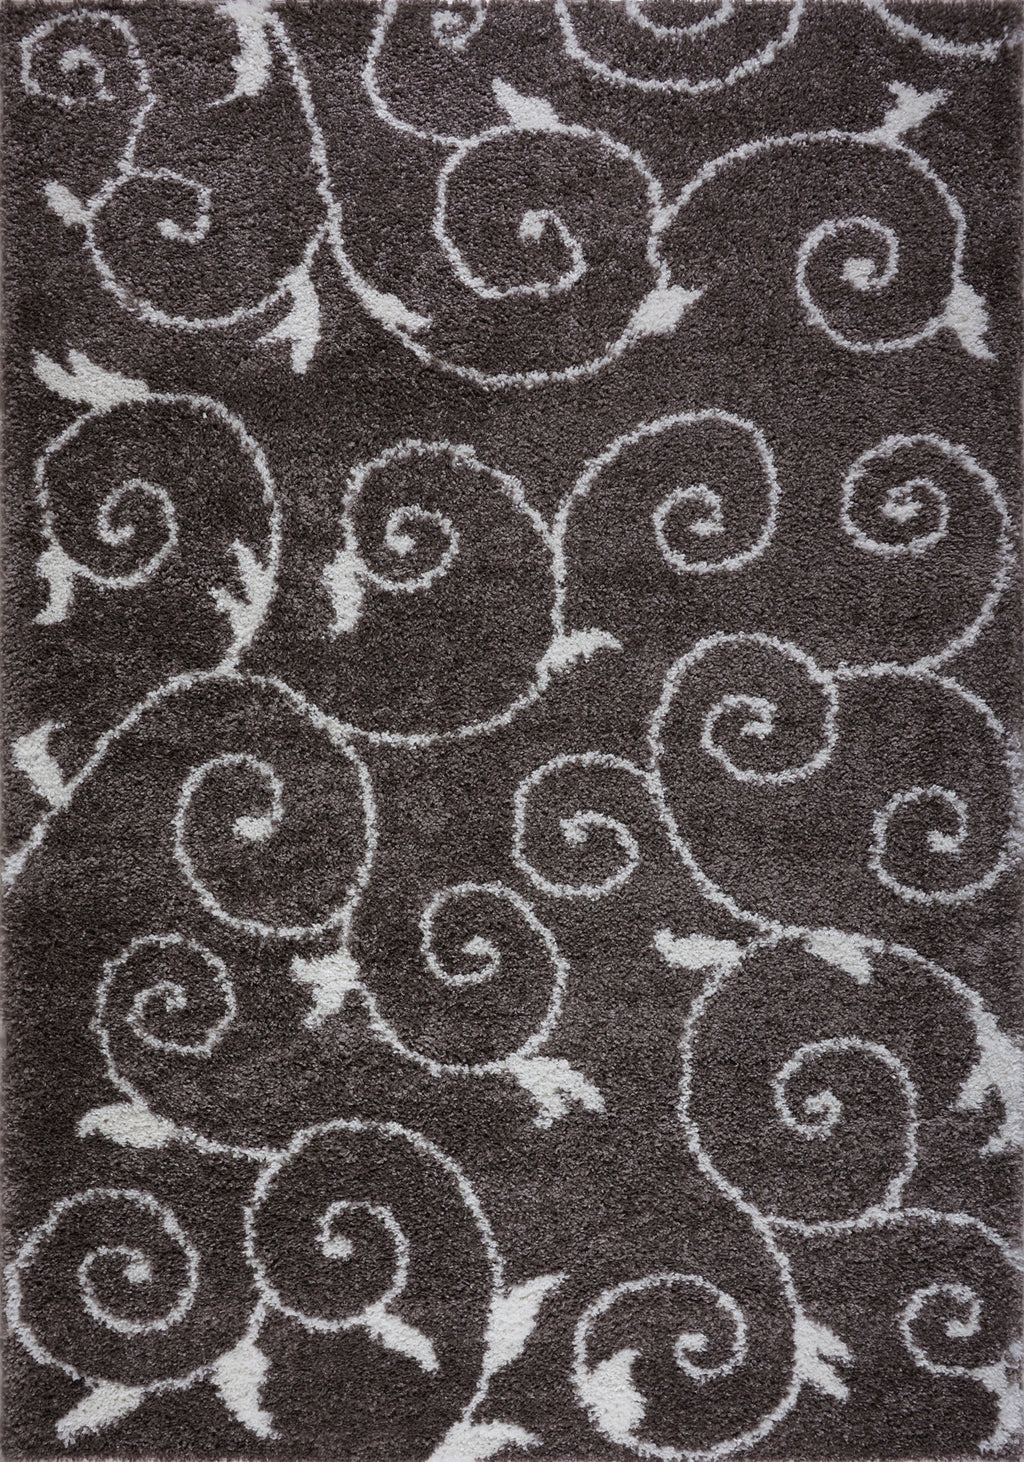 "Shaggy Rabat Abstract Pattern Sustainable Spirals Style Indoor Big Runner Rug, Mink White, 2'7"" x 9'10"" (80 cm x 300 cm)"